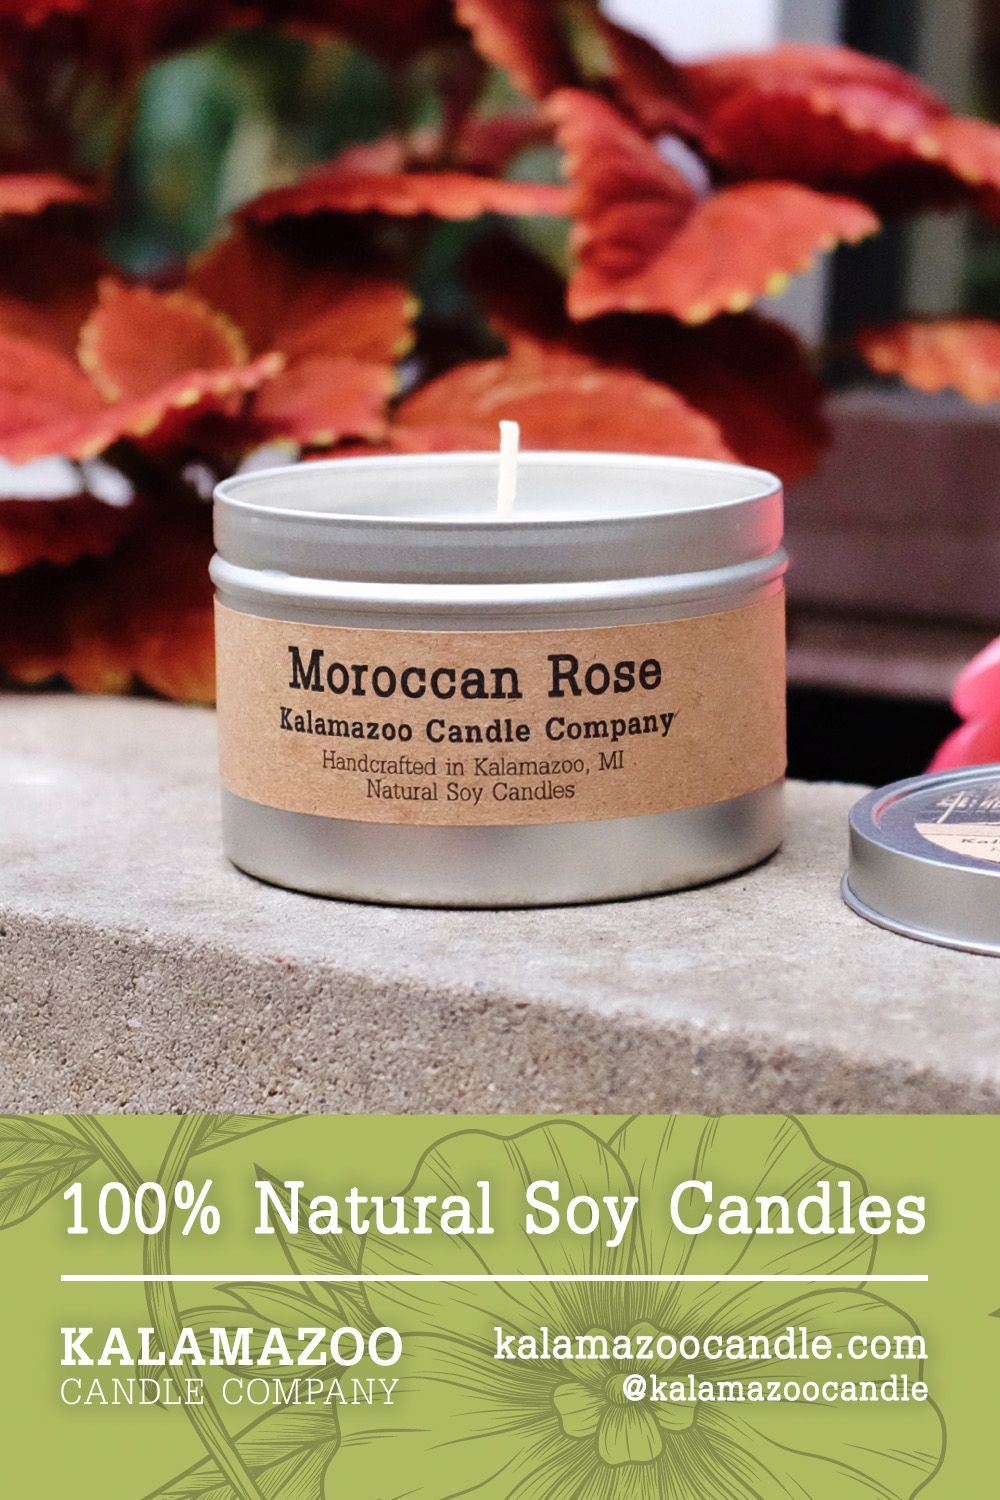 Pin by Candy Gelonese on candles in 2019 | Candle companies